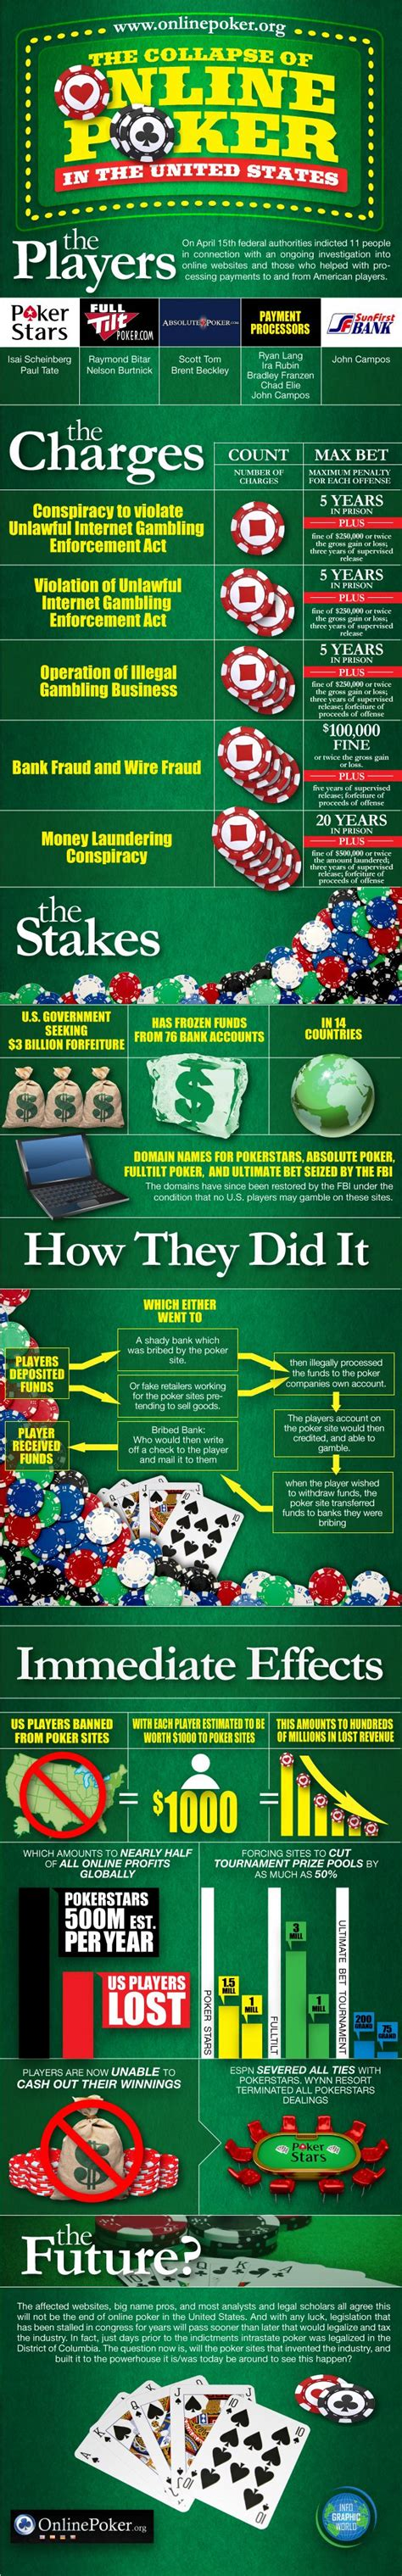 money players the amazing rise and fall of bob goodenow and the nhl players association ebook best 25 online poker ideas on pinterest poker poker